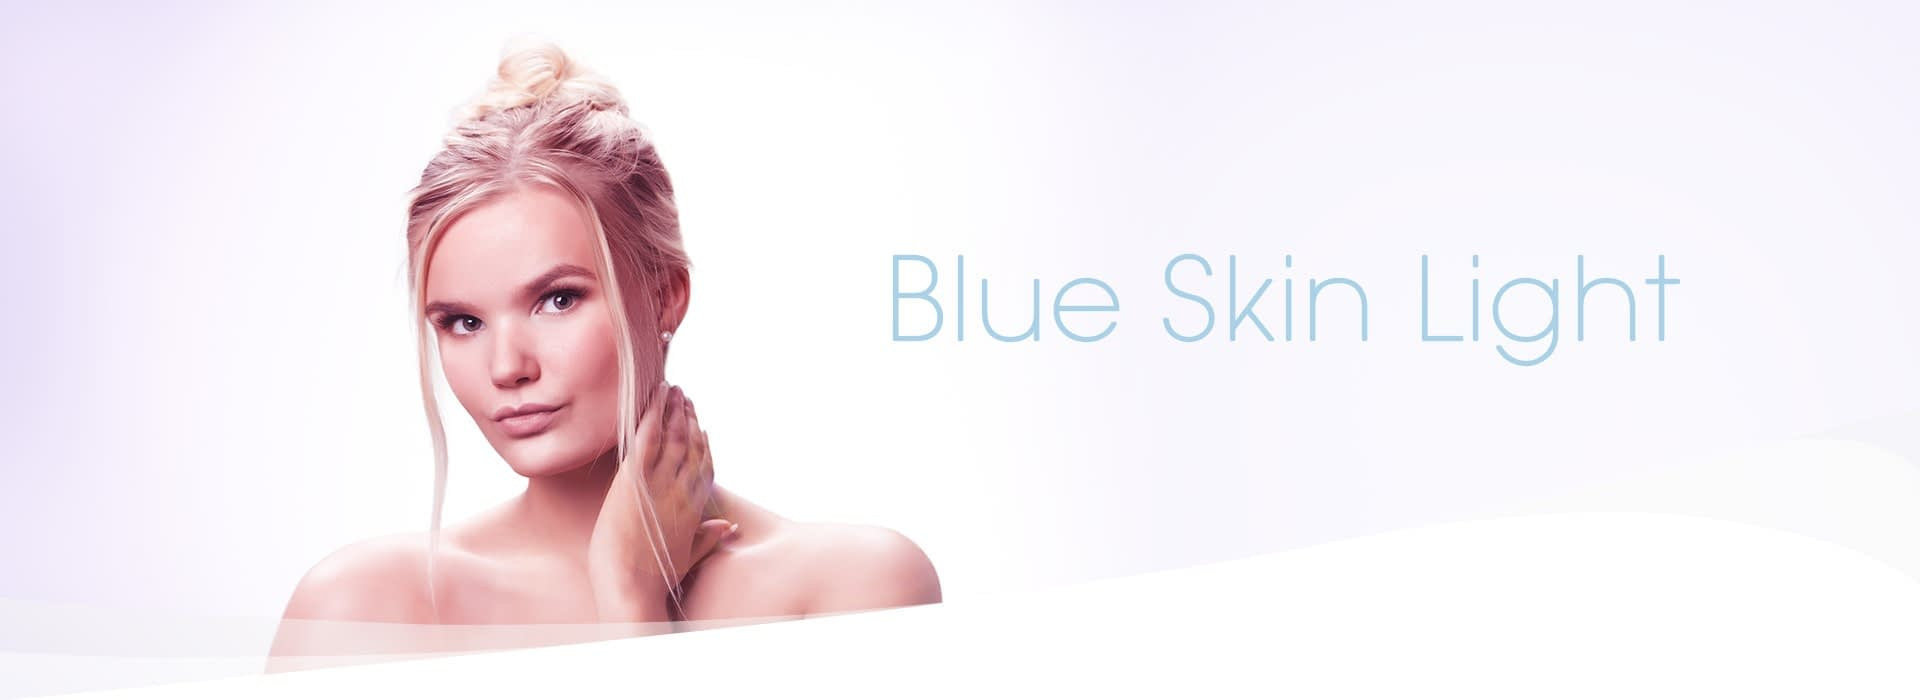 Dr. Muller header Blue Skin Light research